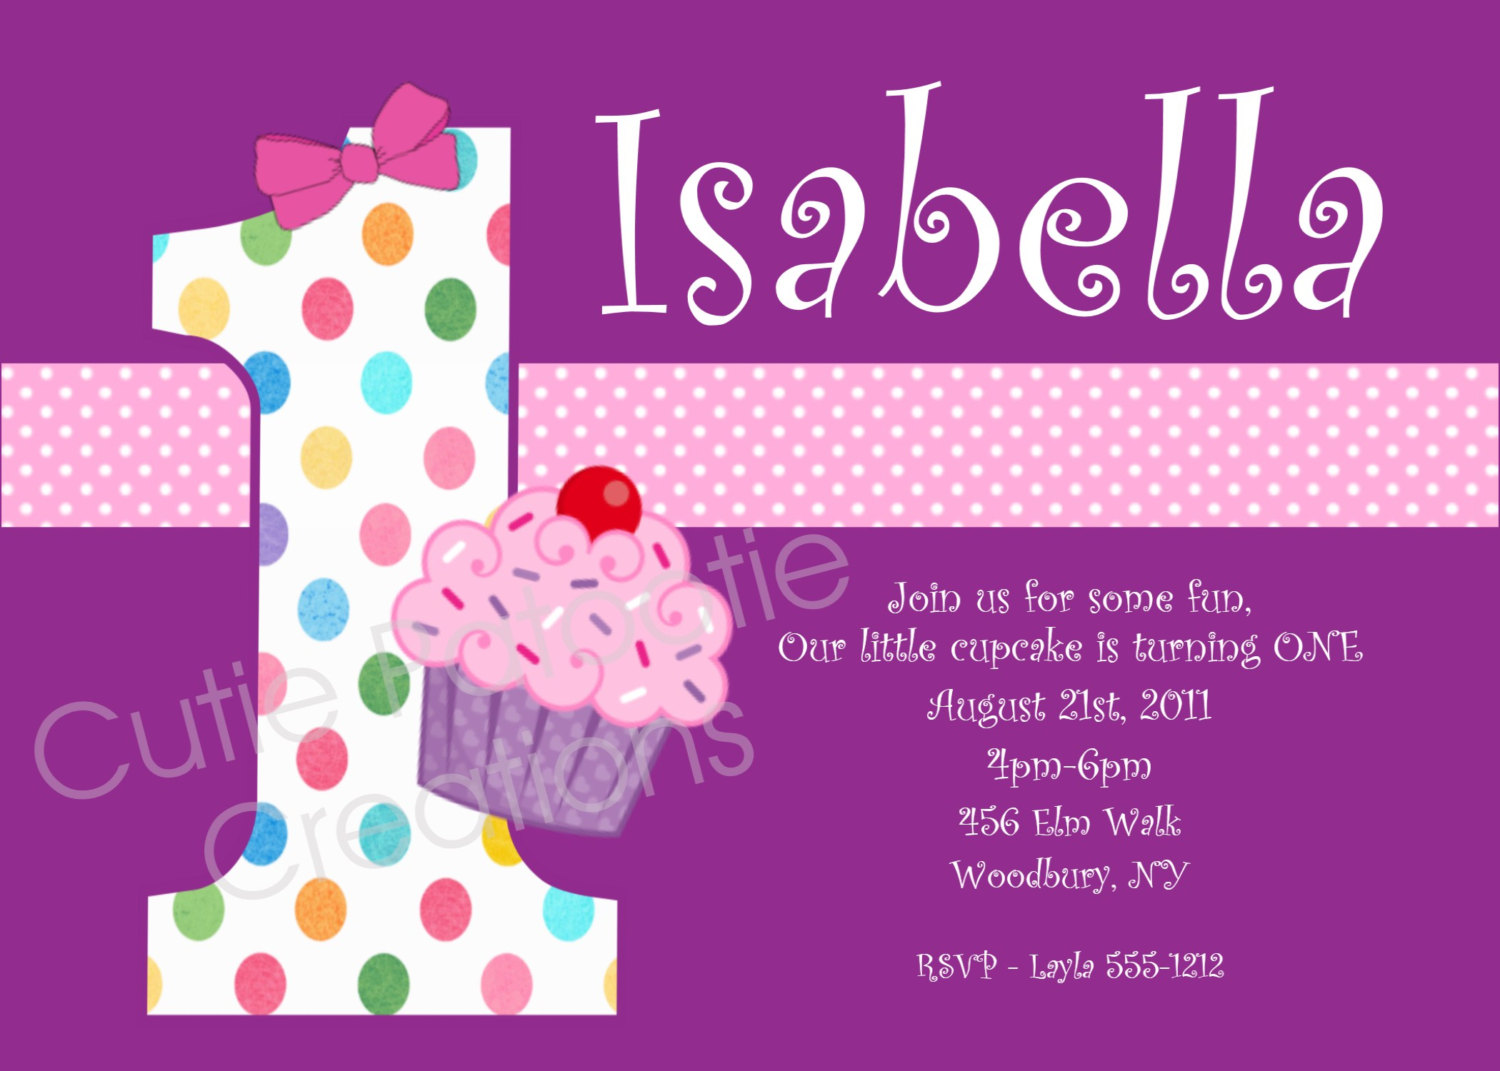 background design for birthday invitation ; How-To-Make-Invitation-For-Birthday-Good-Format-Design-2015-purple-design-background-1st-birthday-cake